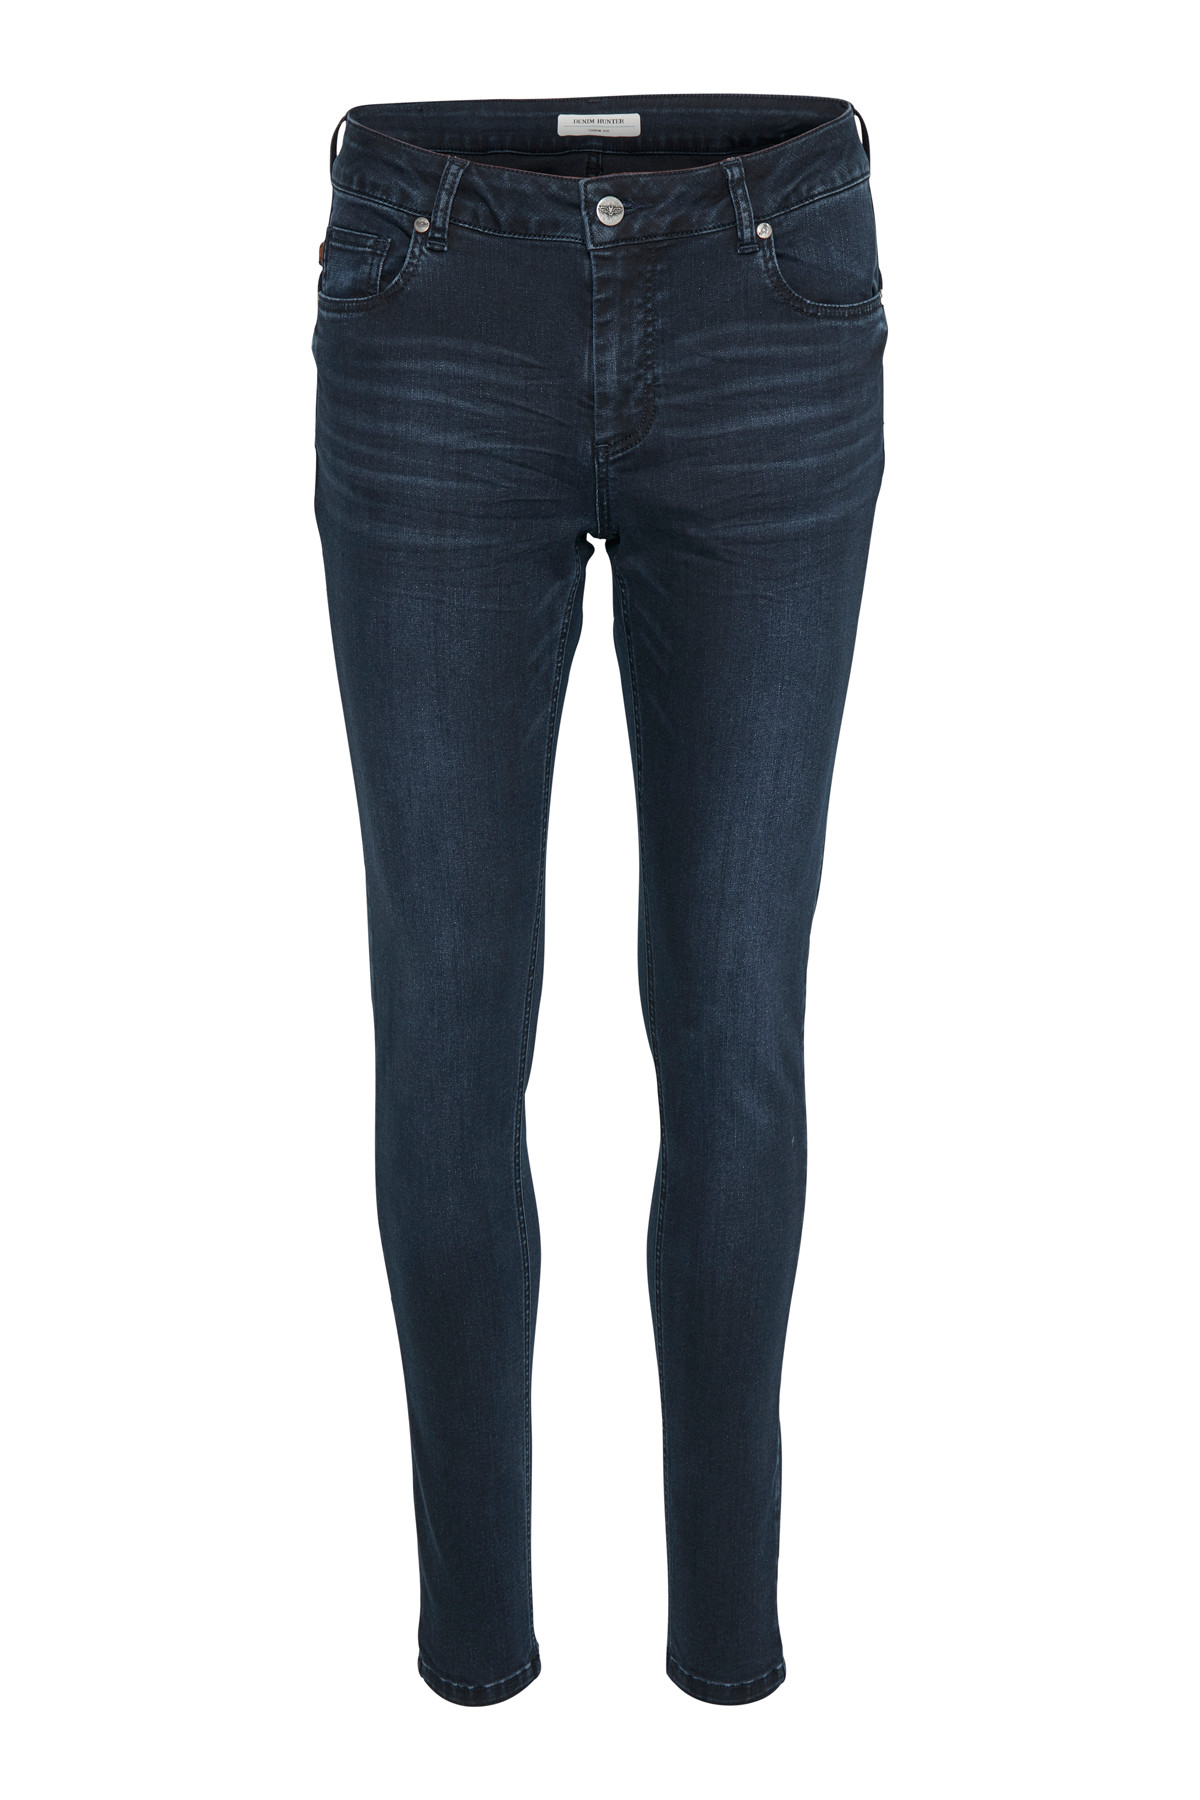 "Image of   Denim Hunter CELINA LONG CUSTOM 10701356 D (Dark Denim 38002, ""32"", 29)"